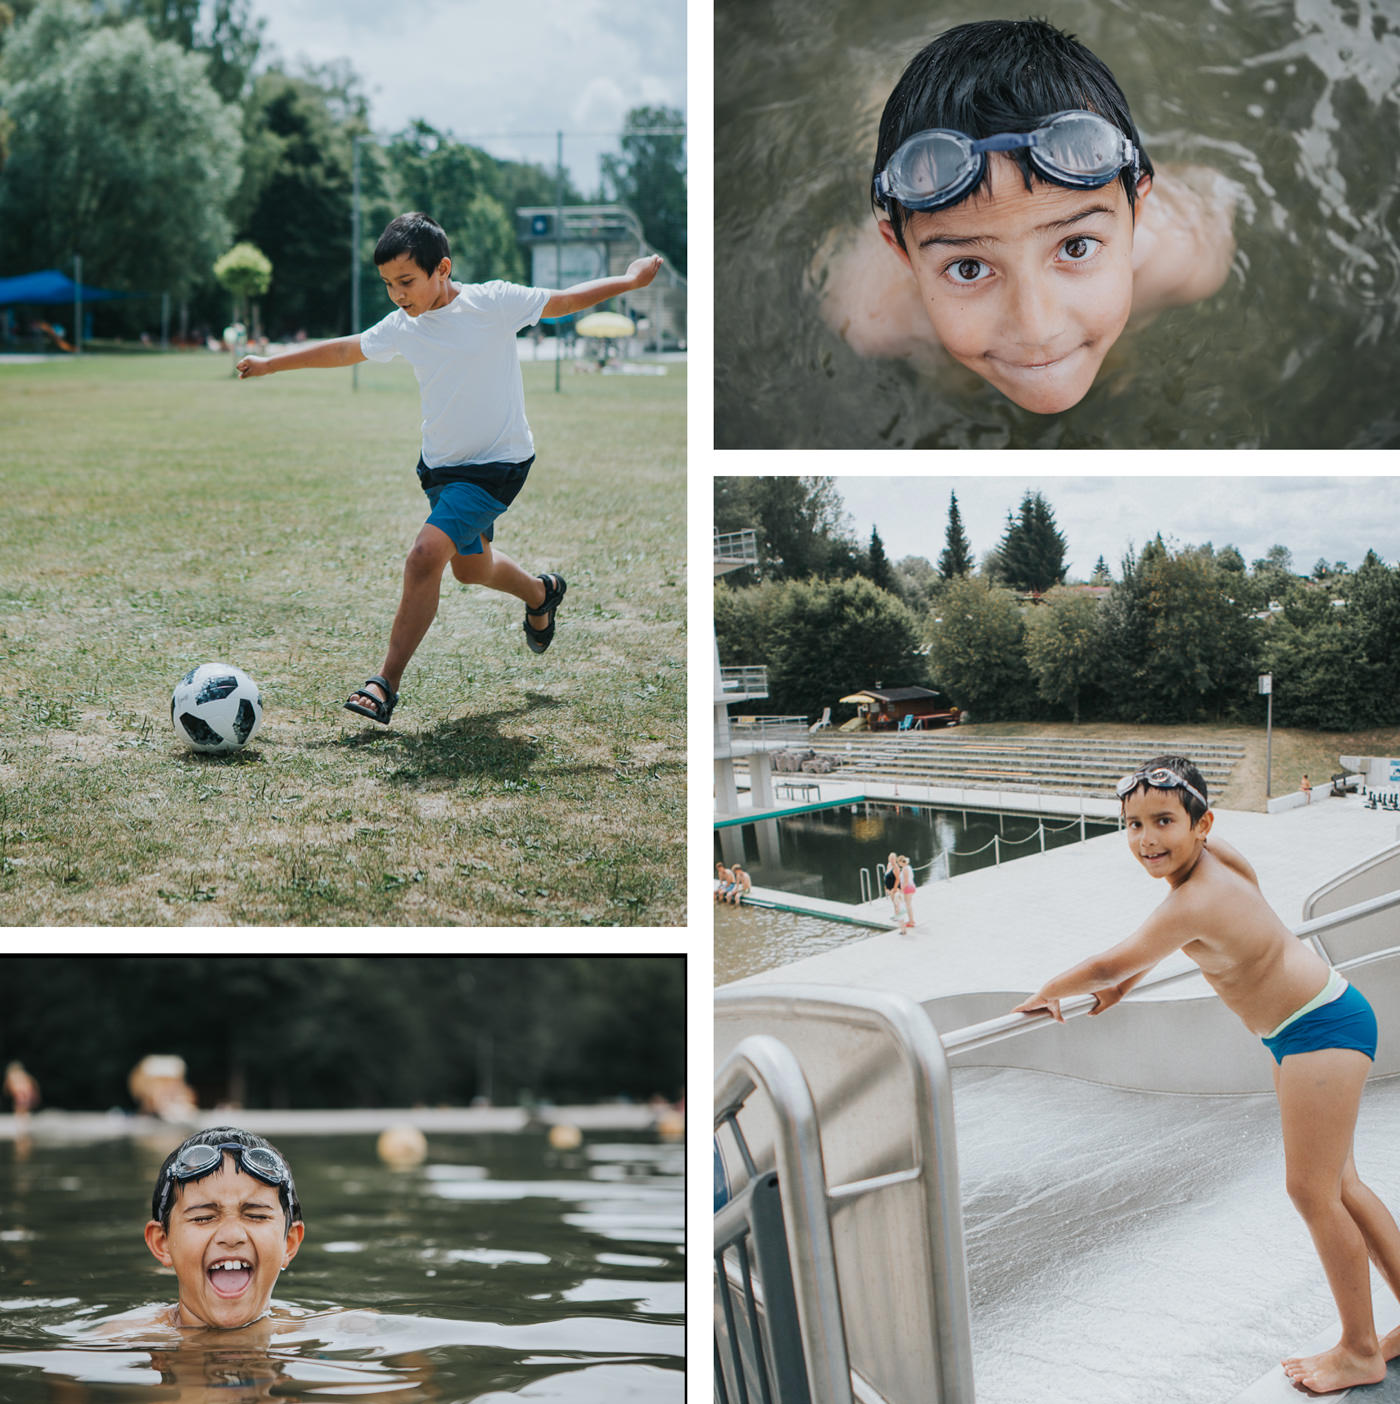 kids having fun at Marktrewitz Schwimmbad - Outdoor pool